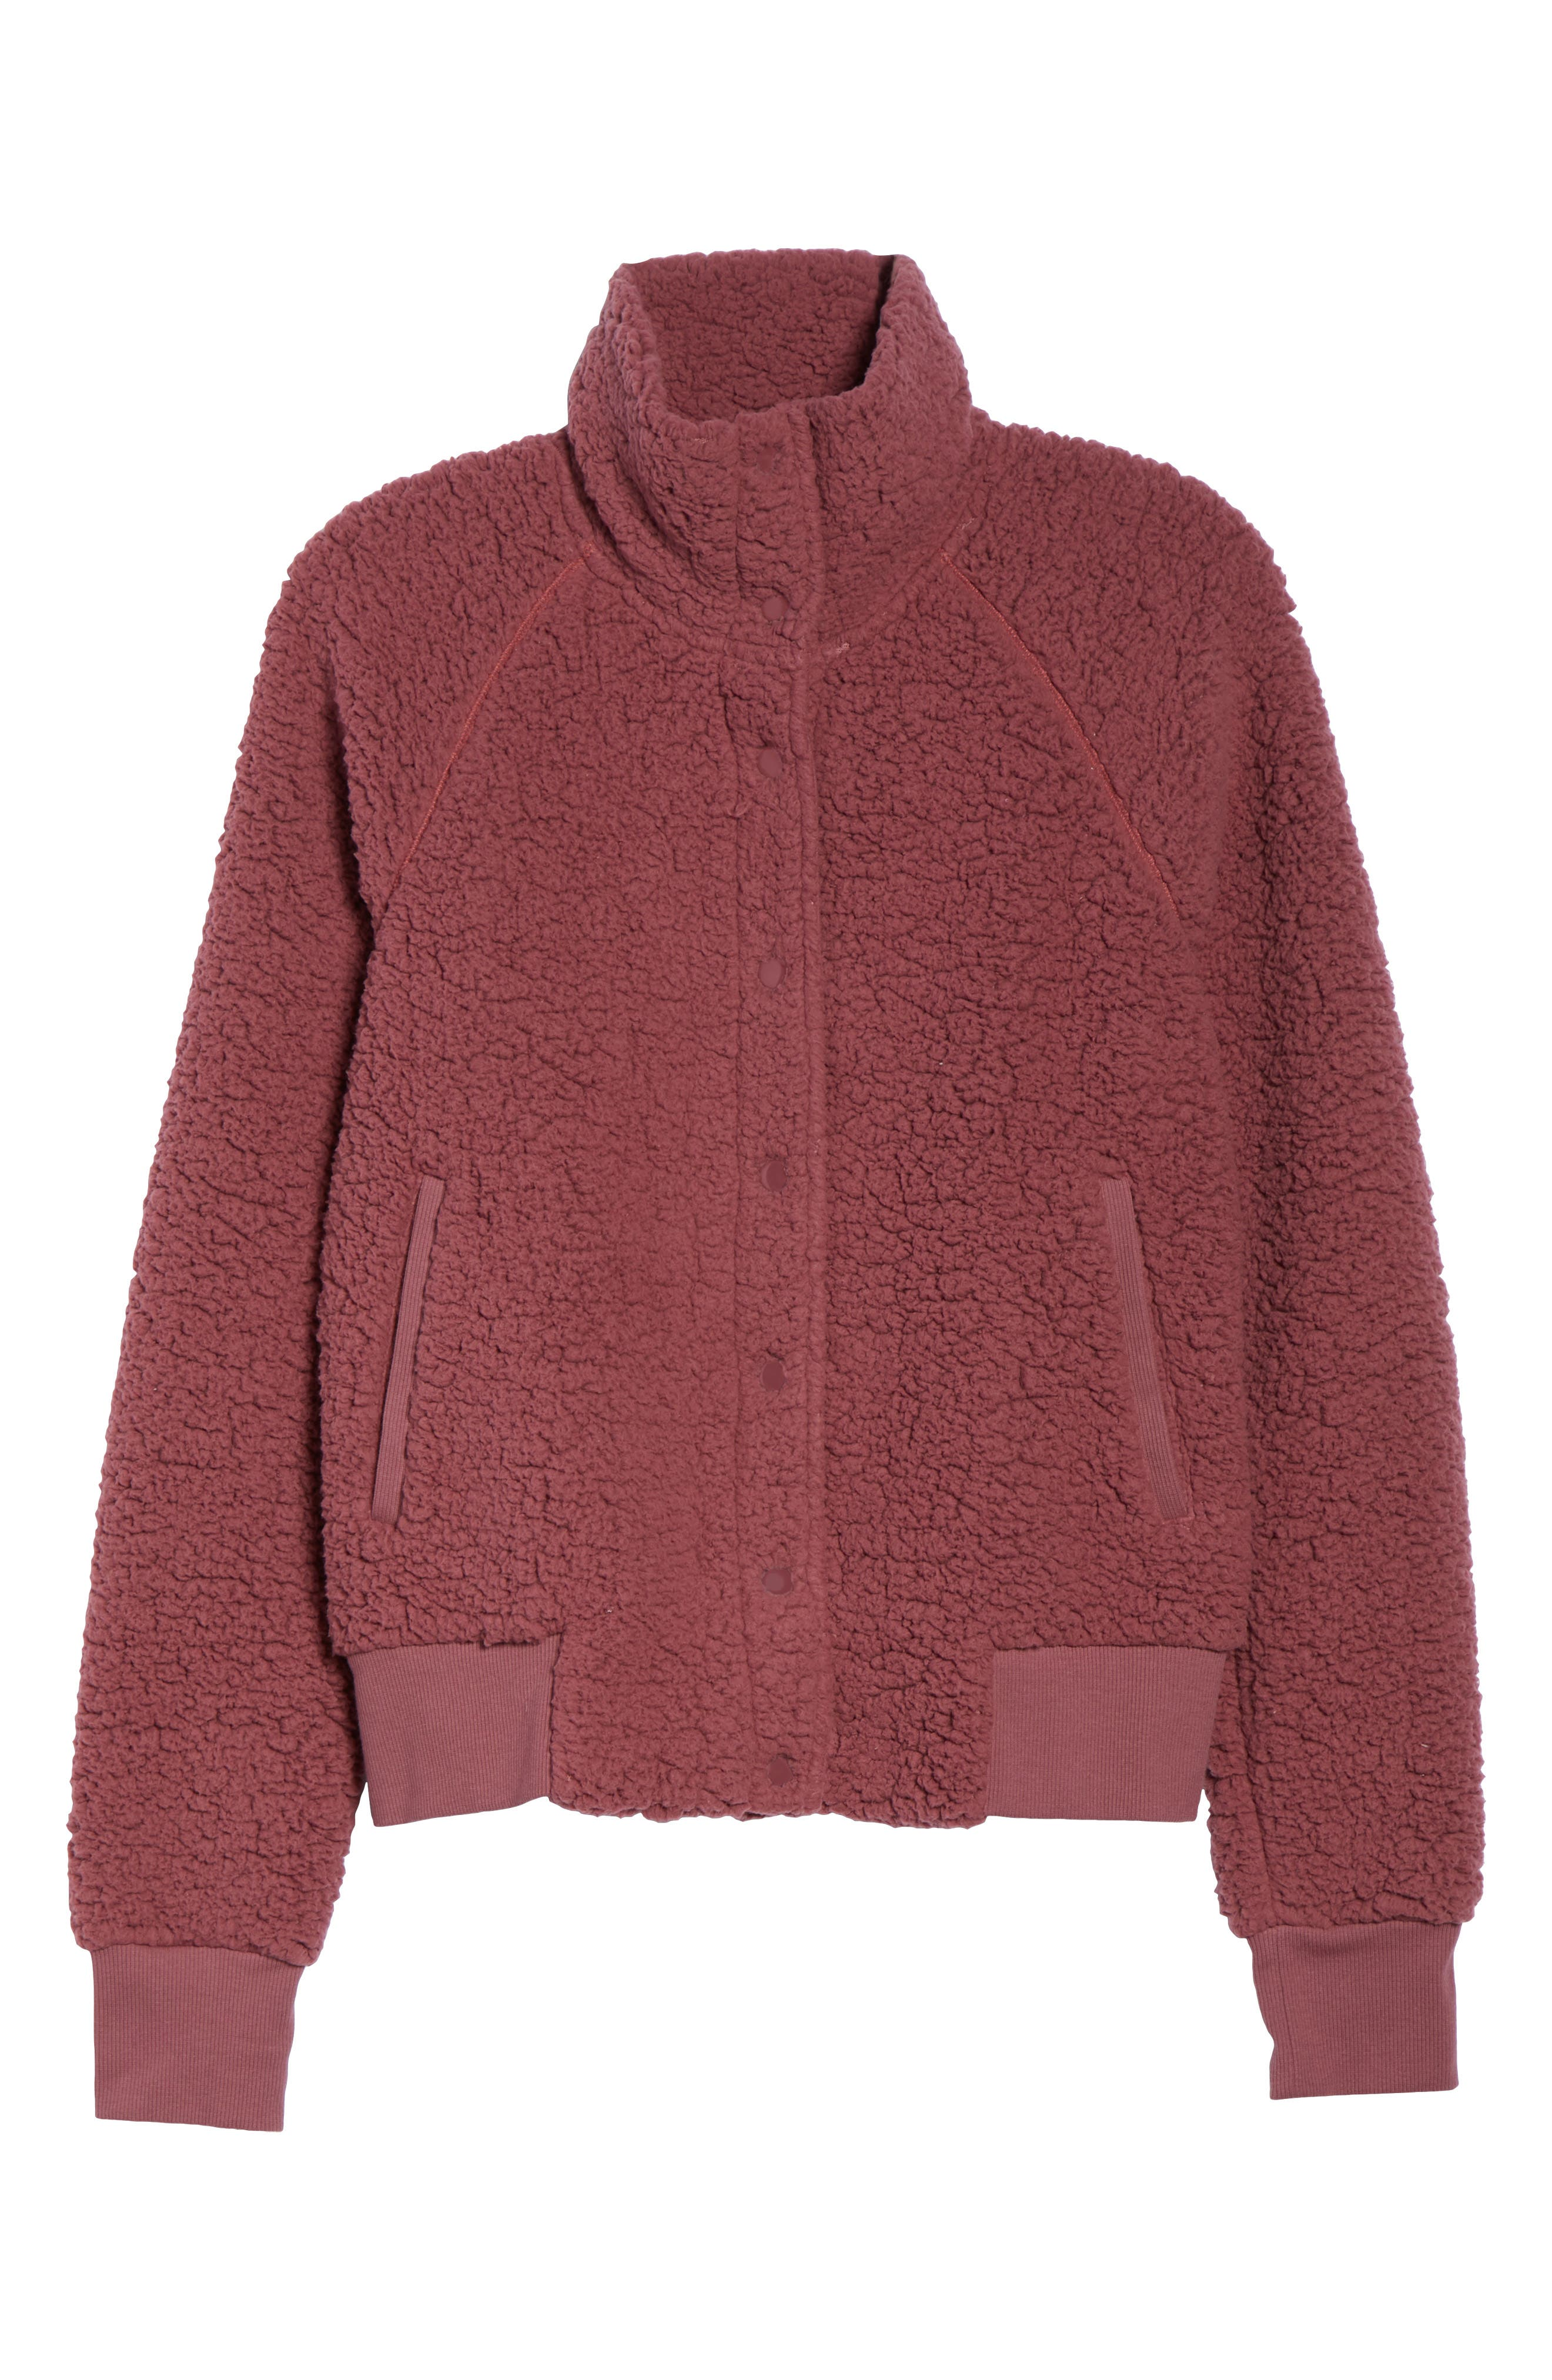 Cozy Up Bomber Jacket,                             Alternate thumbnail 6, color,                             938